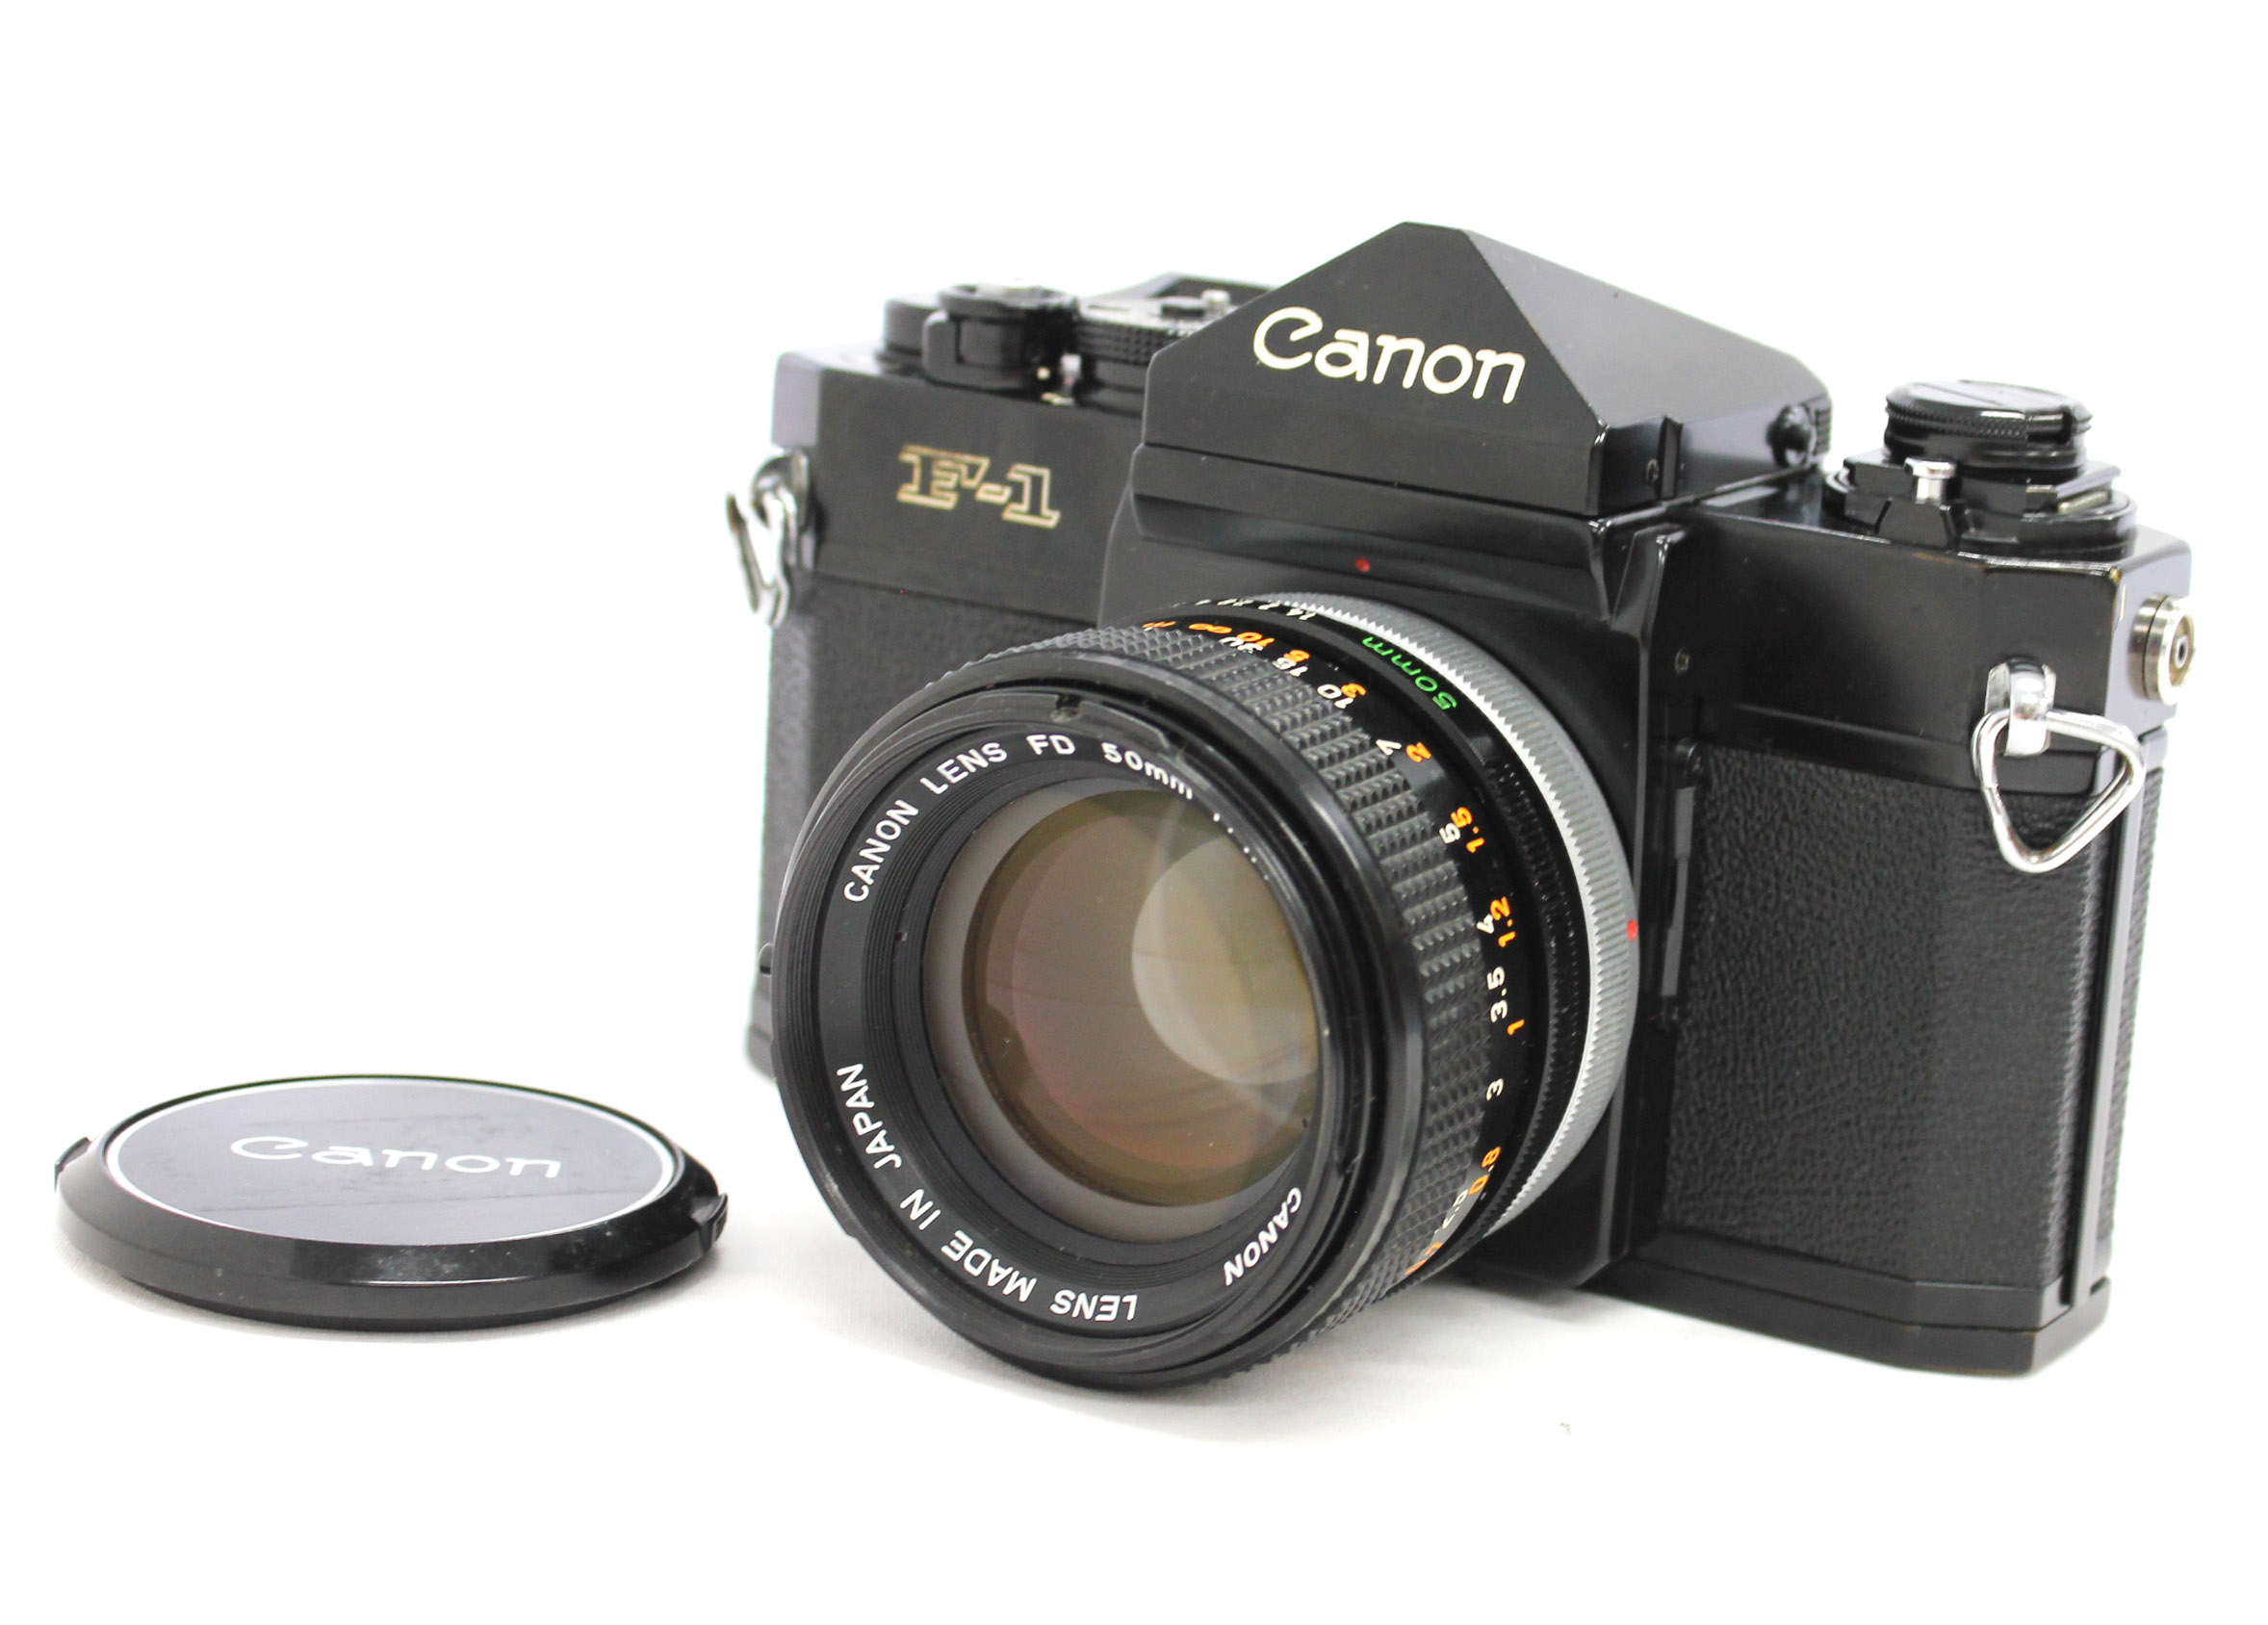 [Exc++++] Canon F-1 Late Model 35mm SLR Film Camera with FD 50mm F/1.4 S.S.C. Lens from Japan